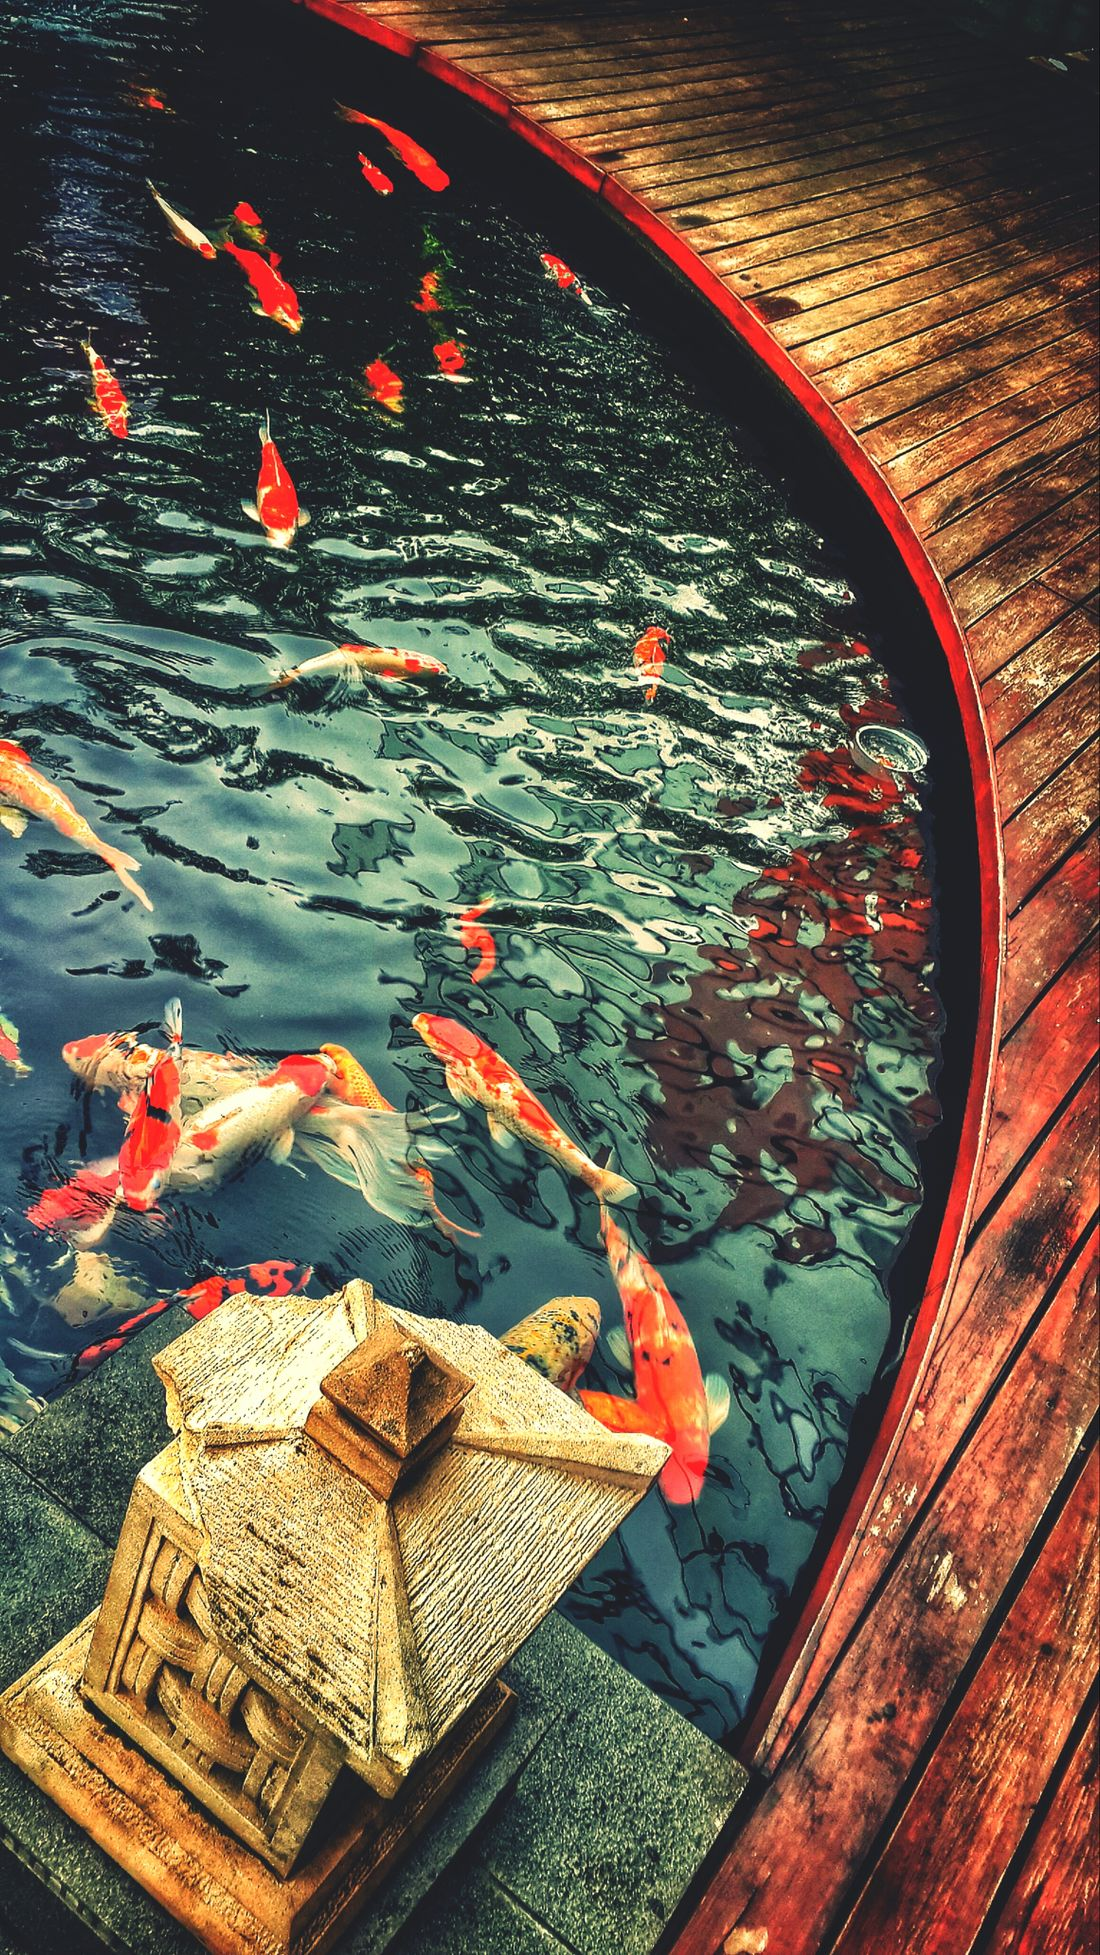 My Happy Place  Fish Ponds #ponds Tranquility Koi